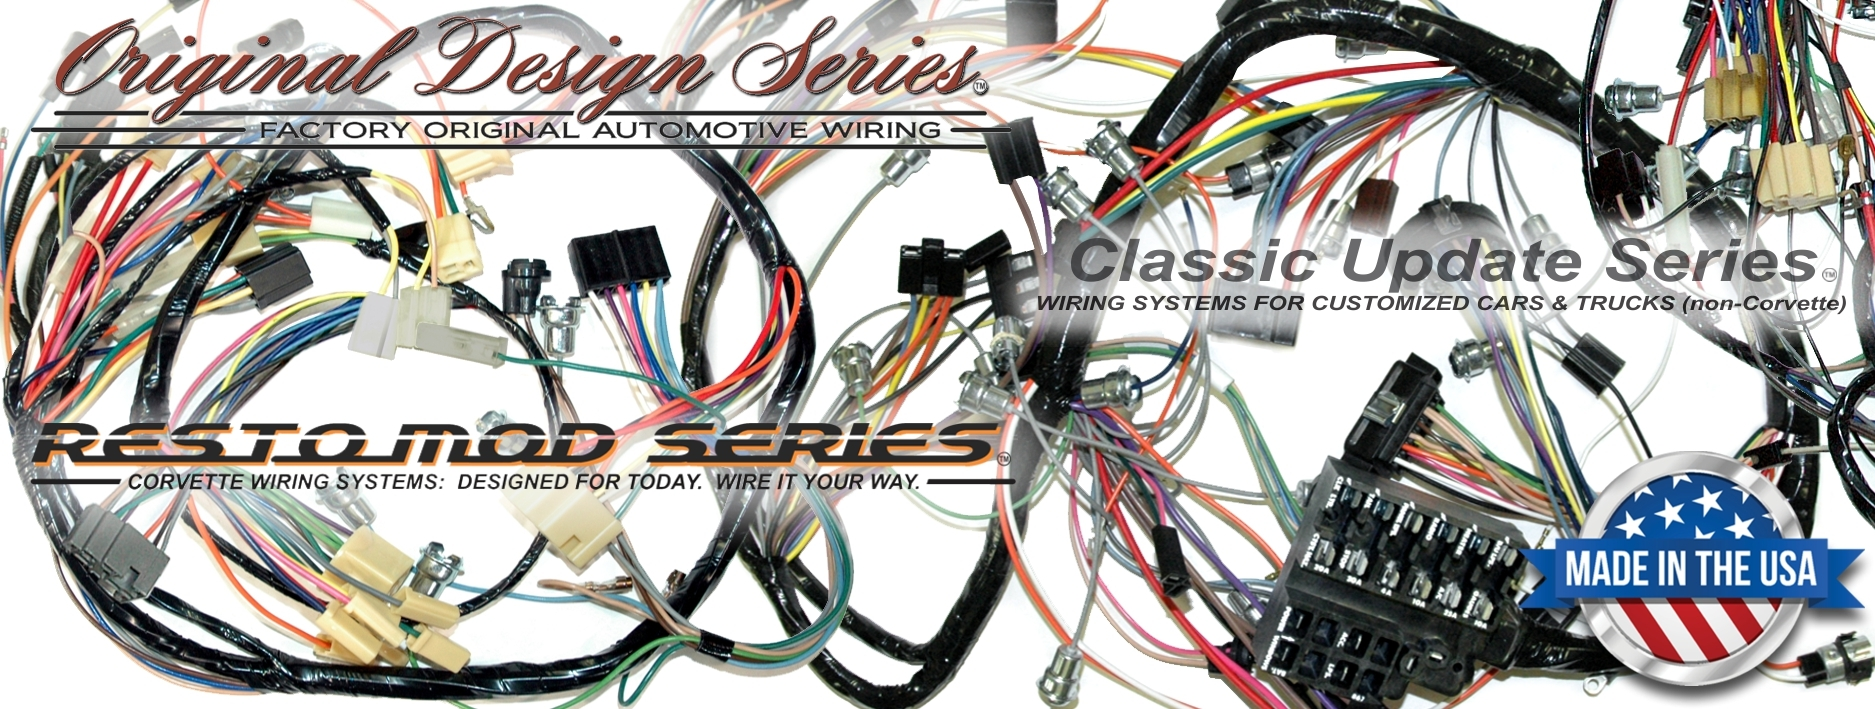 new header wiring_harnesses exact oem reproduction wiring harnesses and restomod wiring 1976 corvette wiring harness at gsmx.co